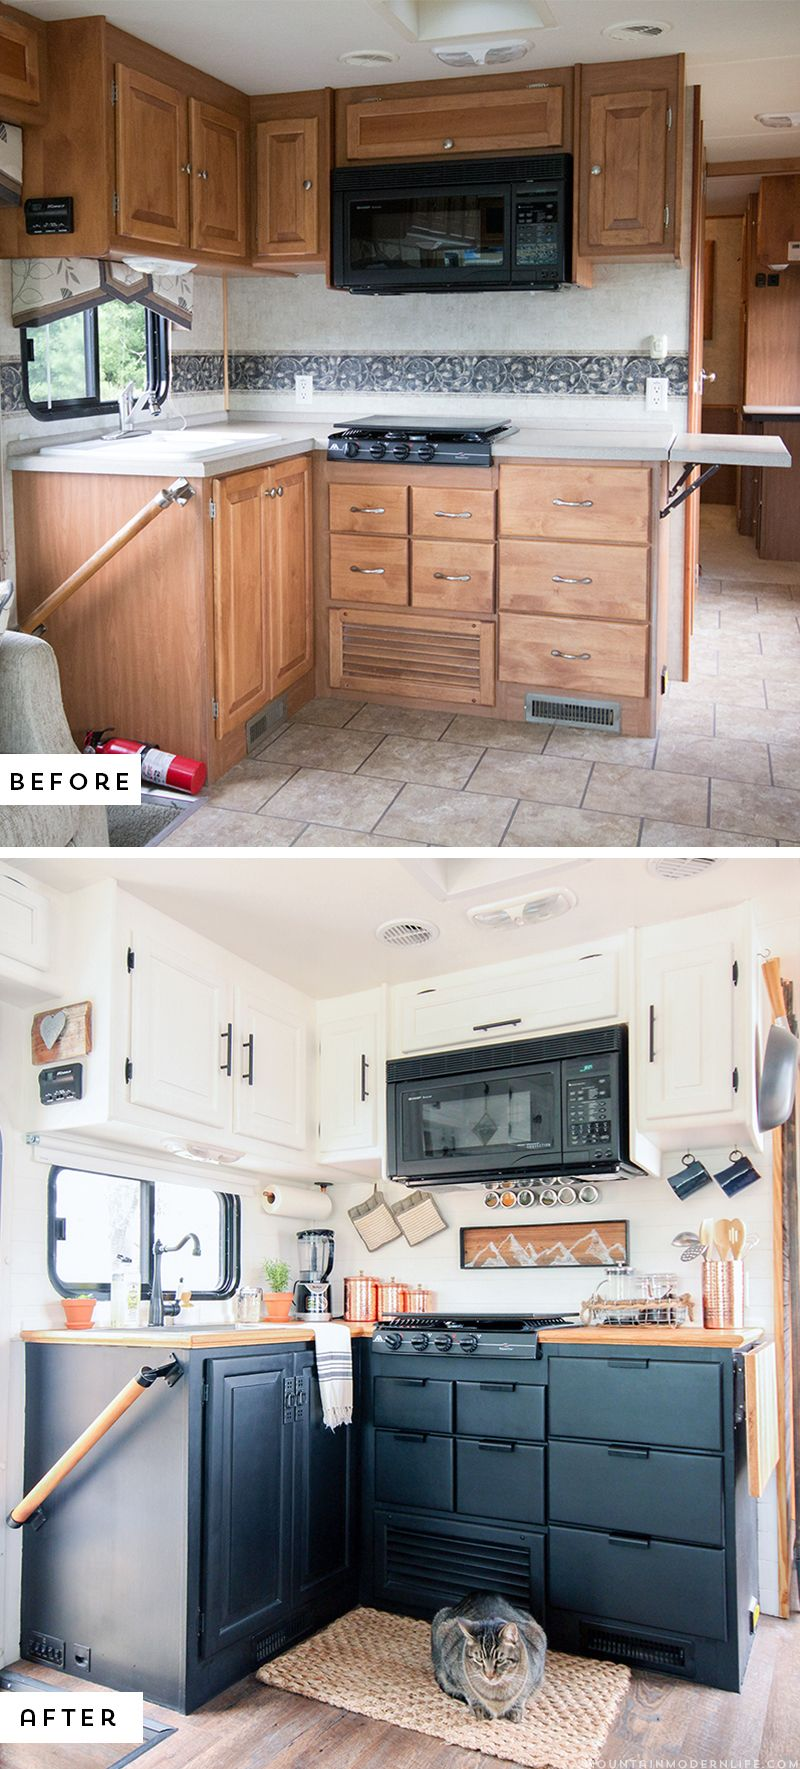 Rustic Modern Rv Tour Mountainmodernlife Com Kitchen Remodel Small Kitchen Remodel Layout Remodeled Campers